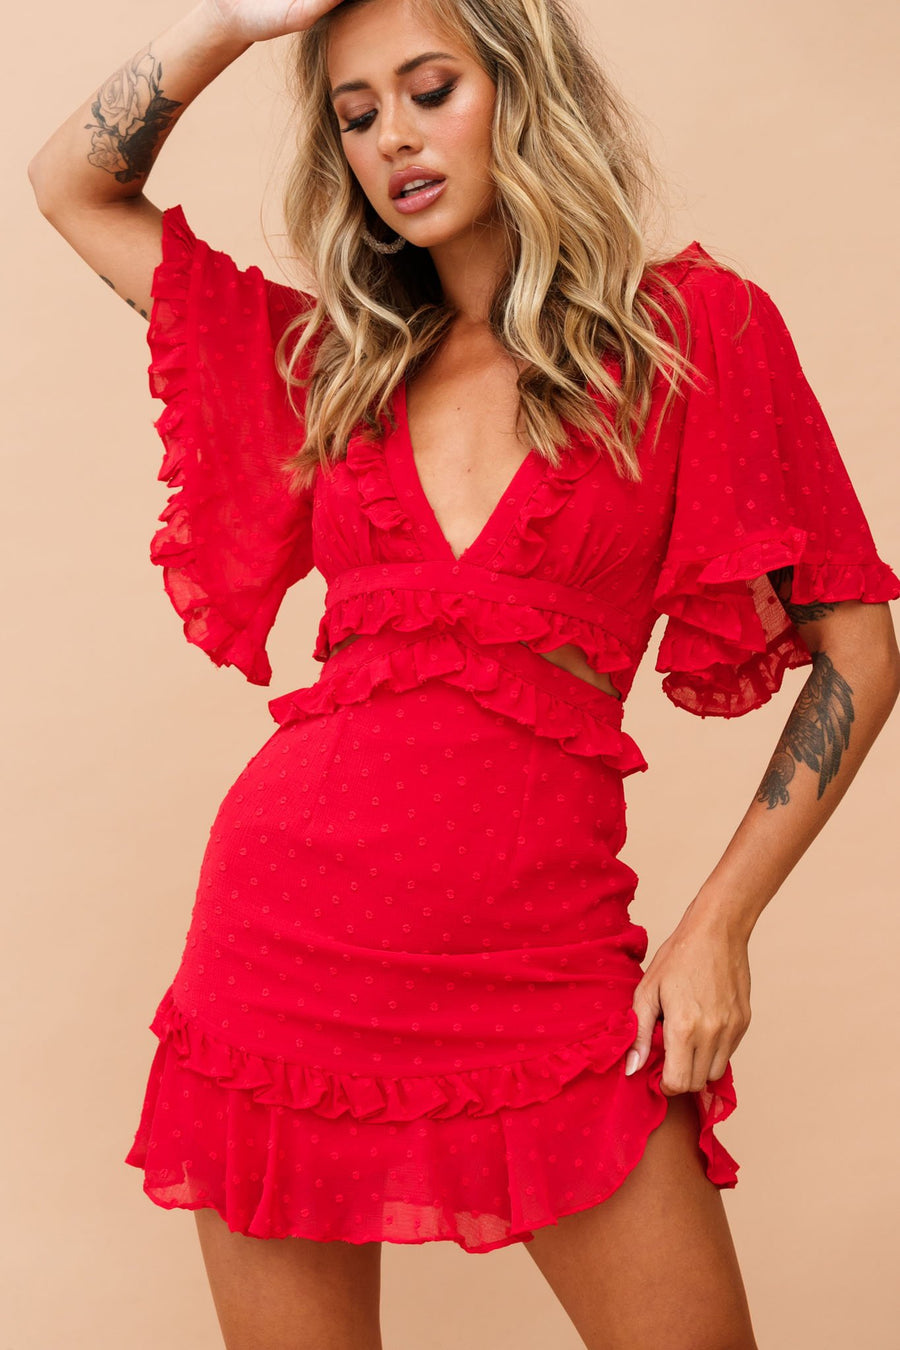 Sprung In Love Dress // Red